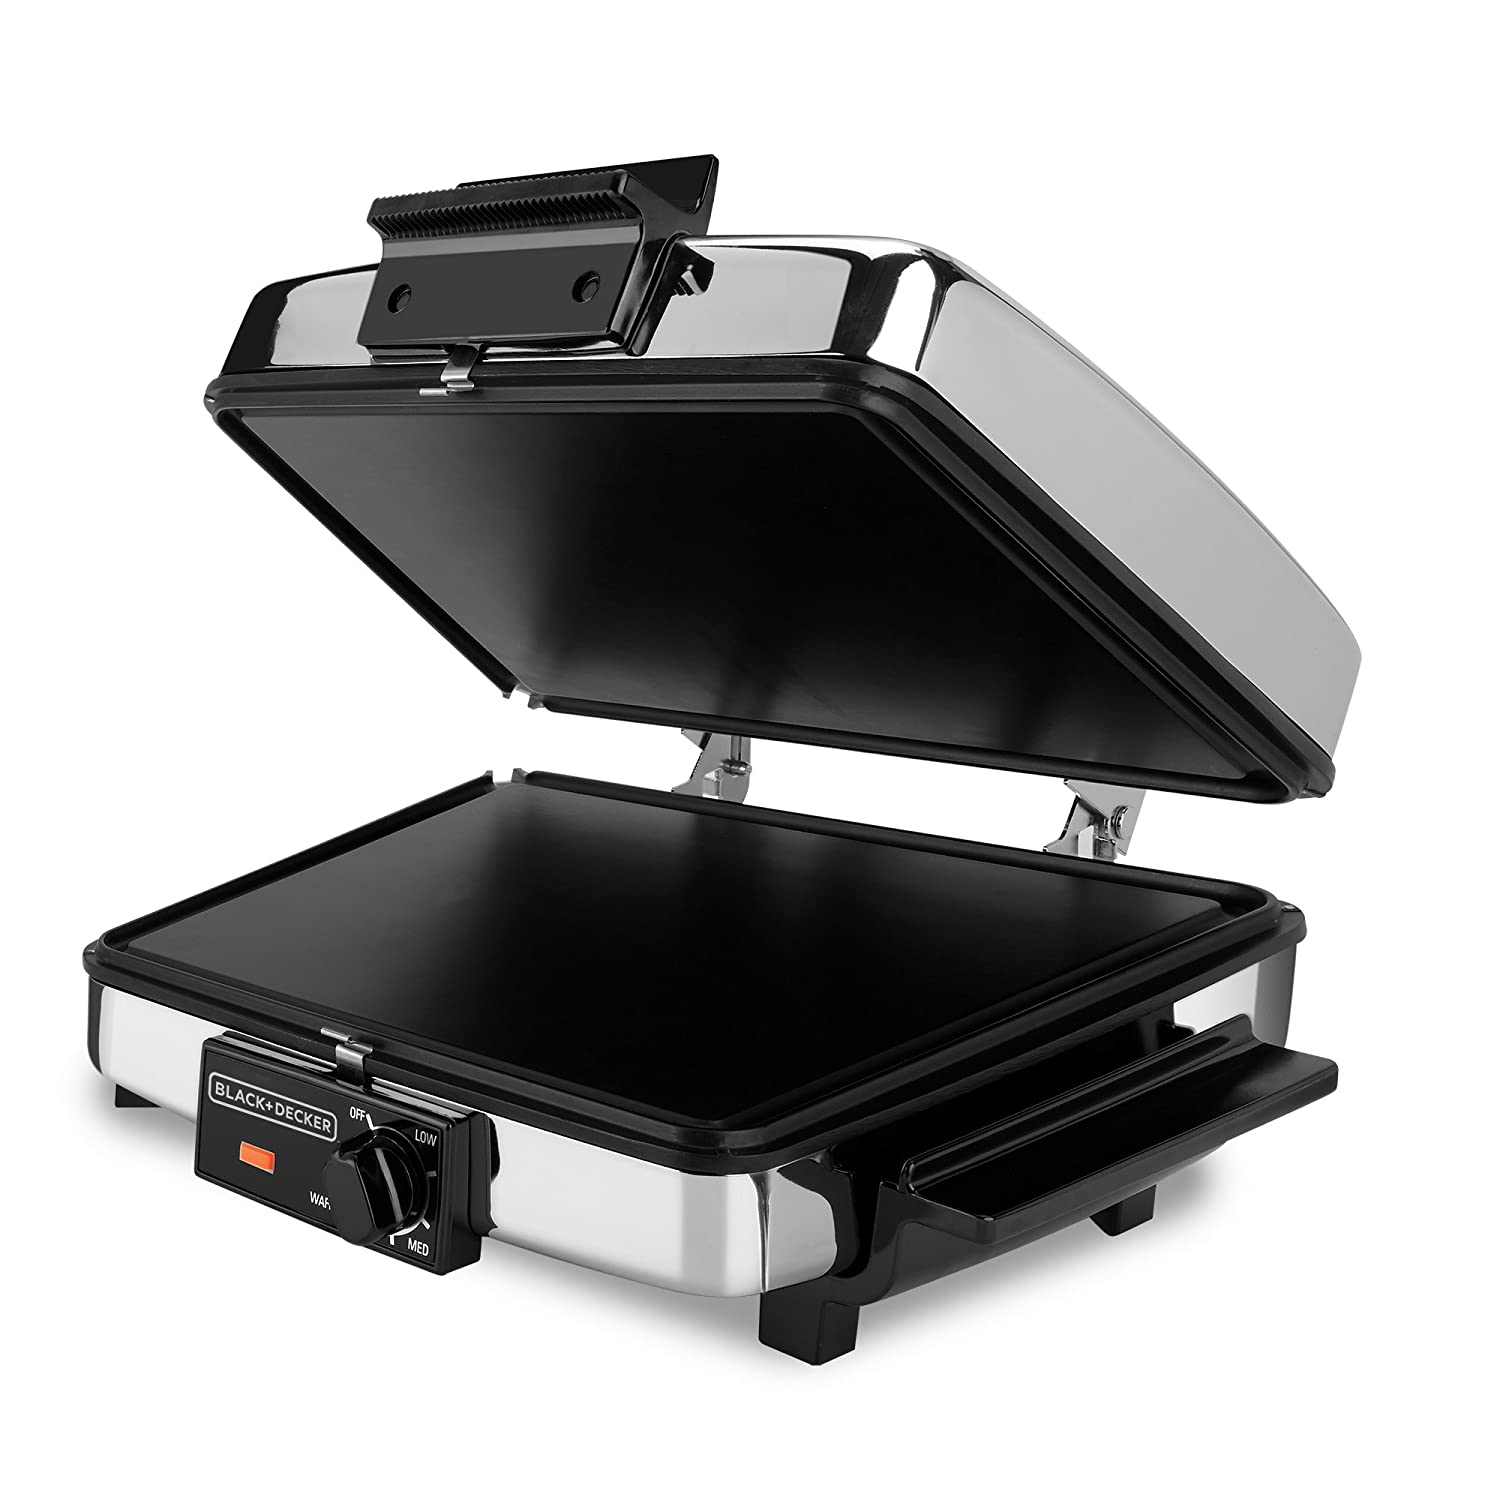 BLACK+DECKER 3-in-1 Waffle Maker with Nonstick Reversible Plates, Stainless Steel, G48TD